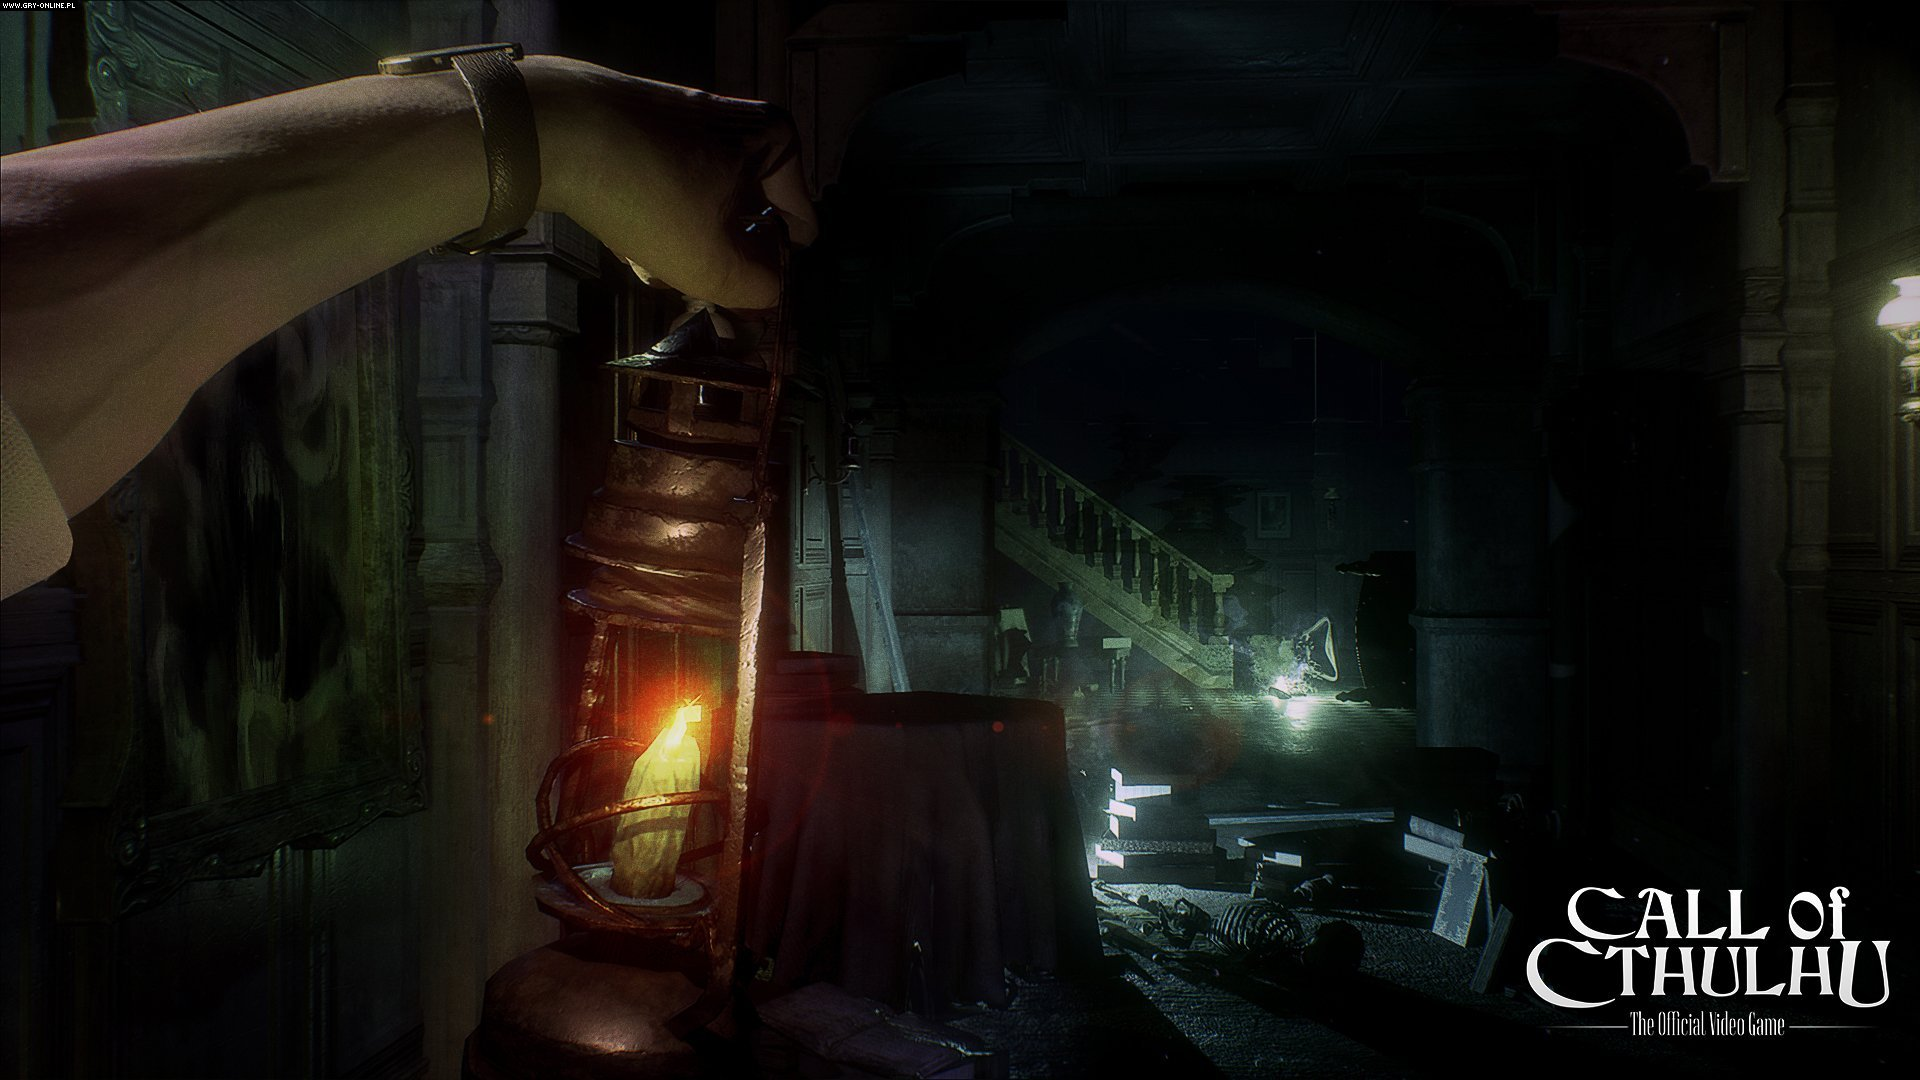 Call of Cthulhu PC Games Image 5/14, Cyanide Studio, Focus Home Interactive